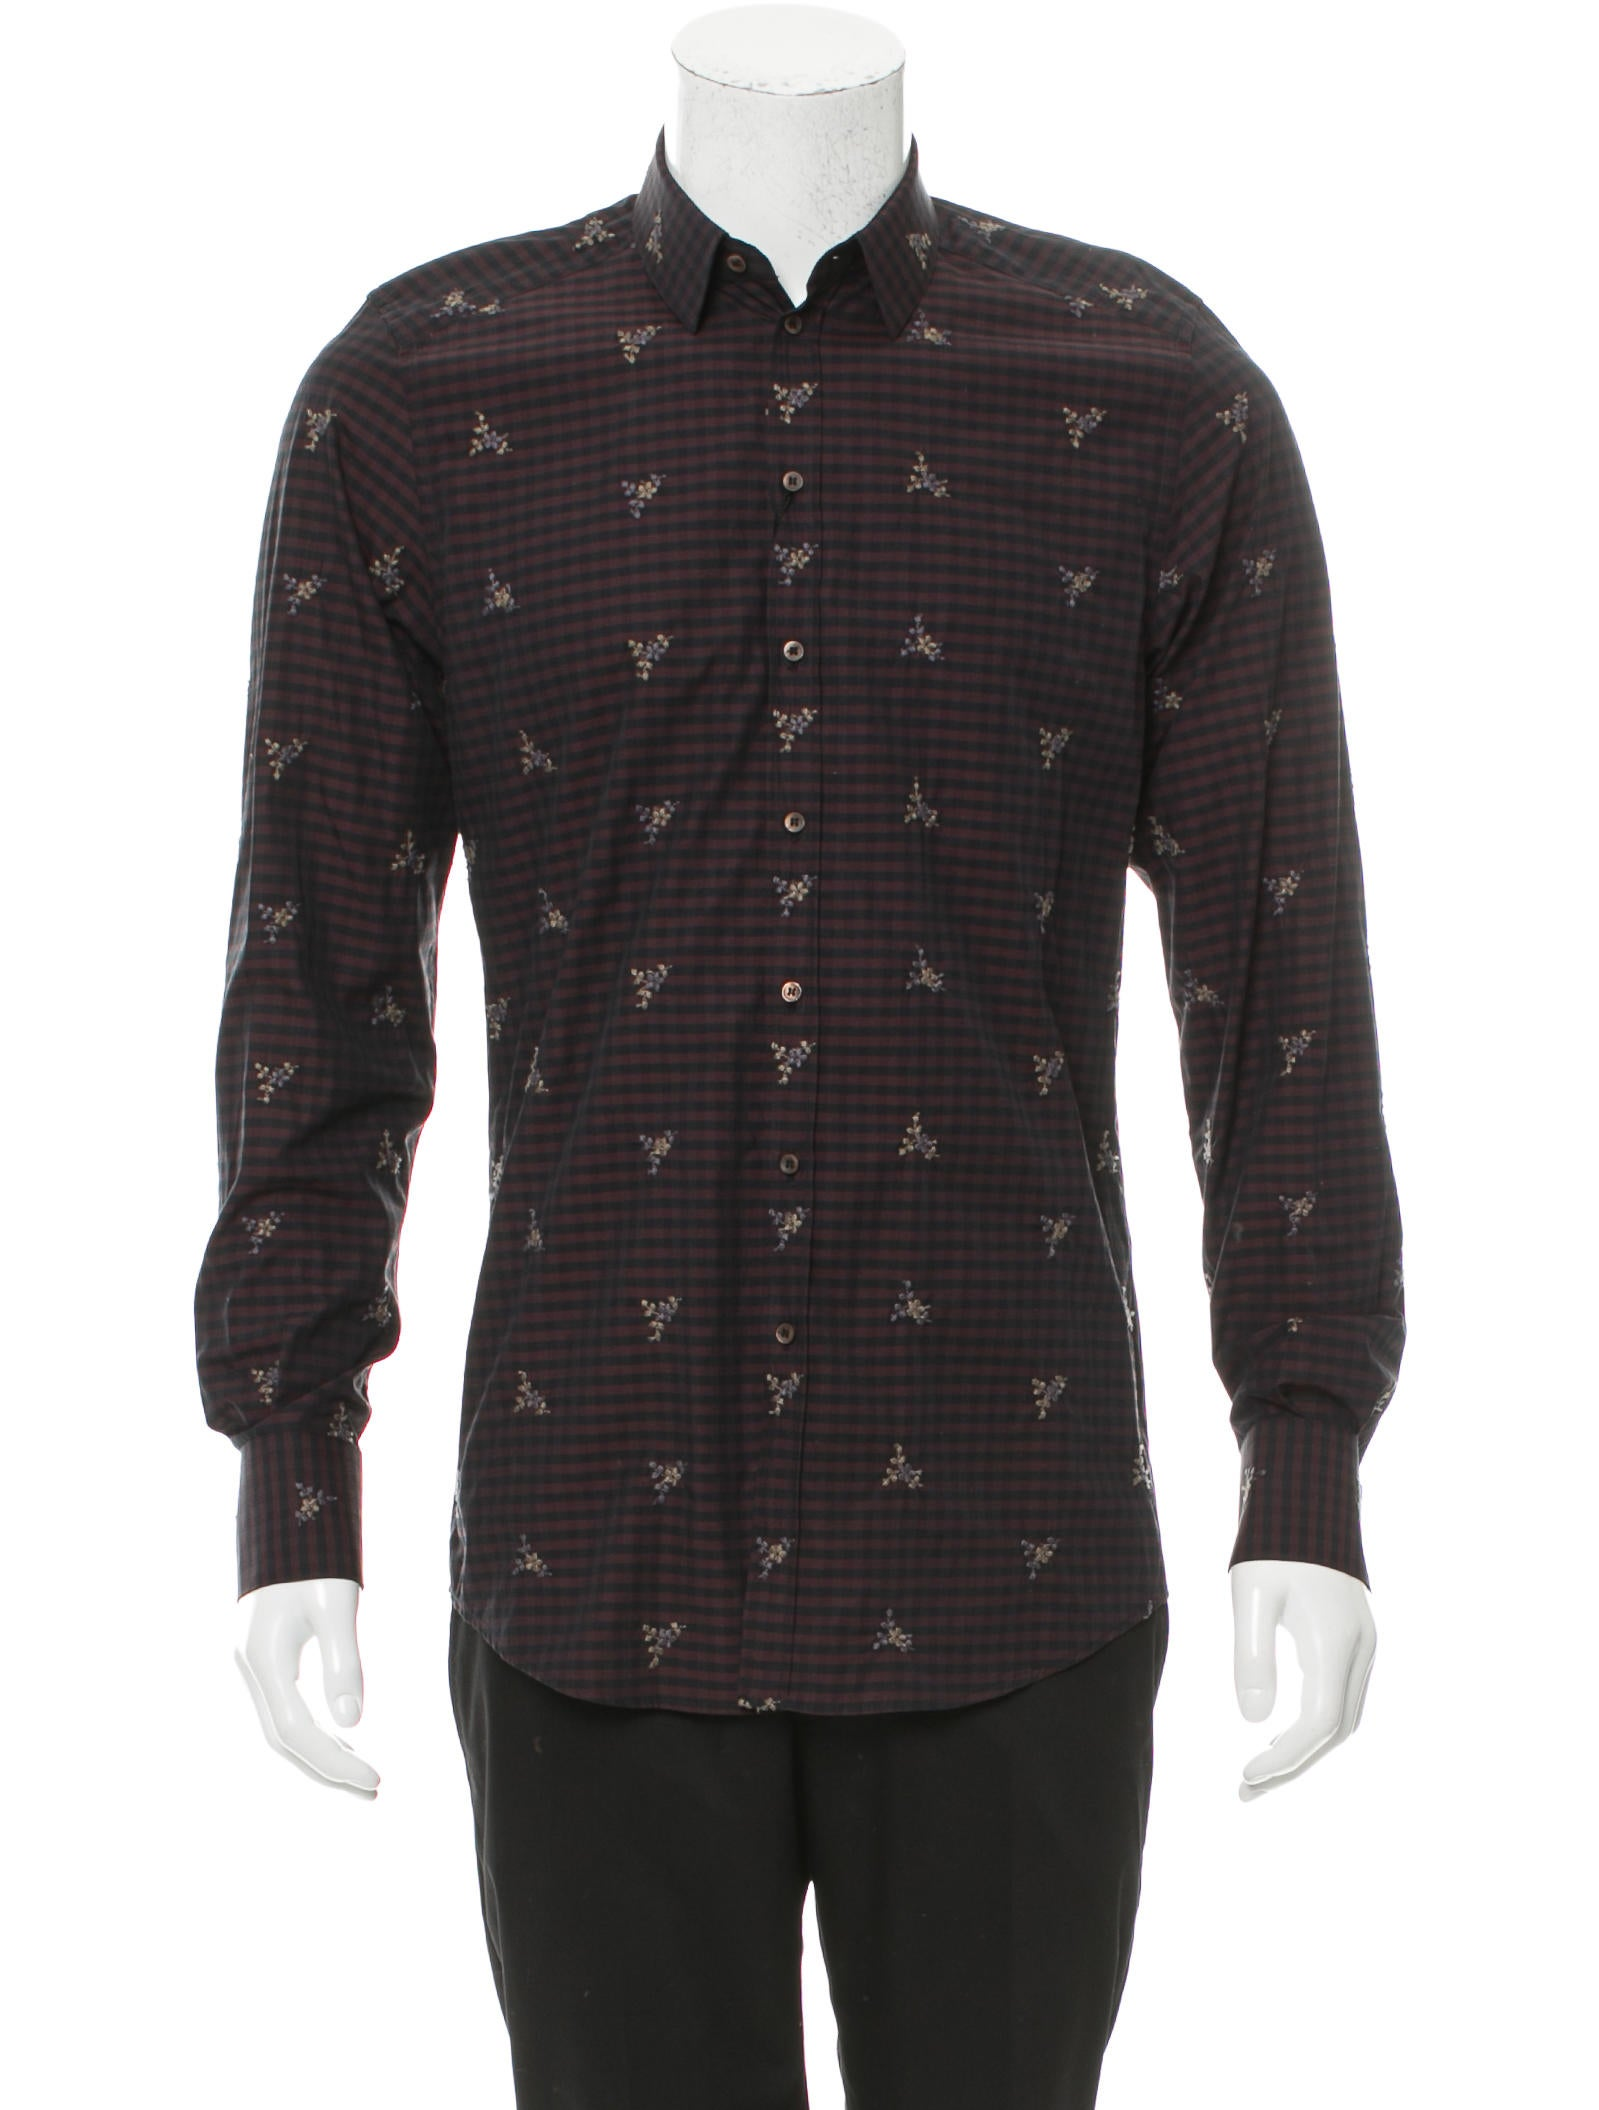 Dolce gabbana gingham floral embroidered shirt w tags